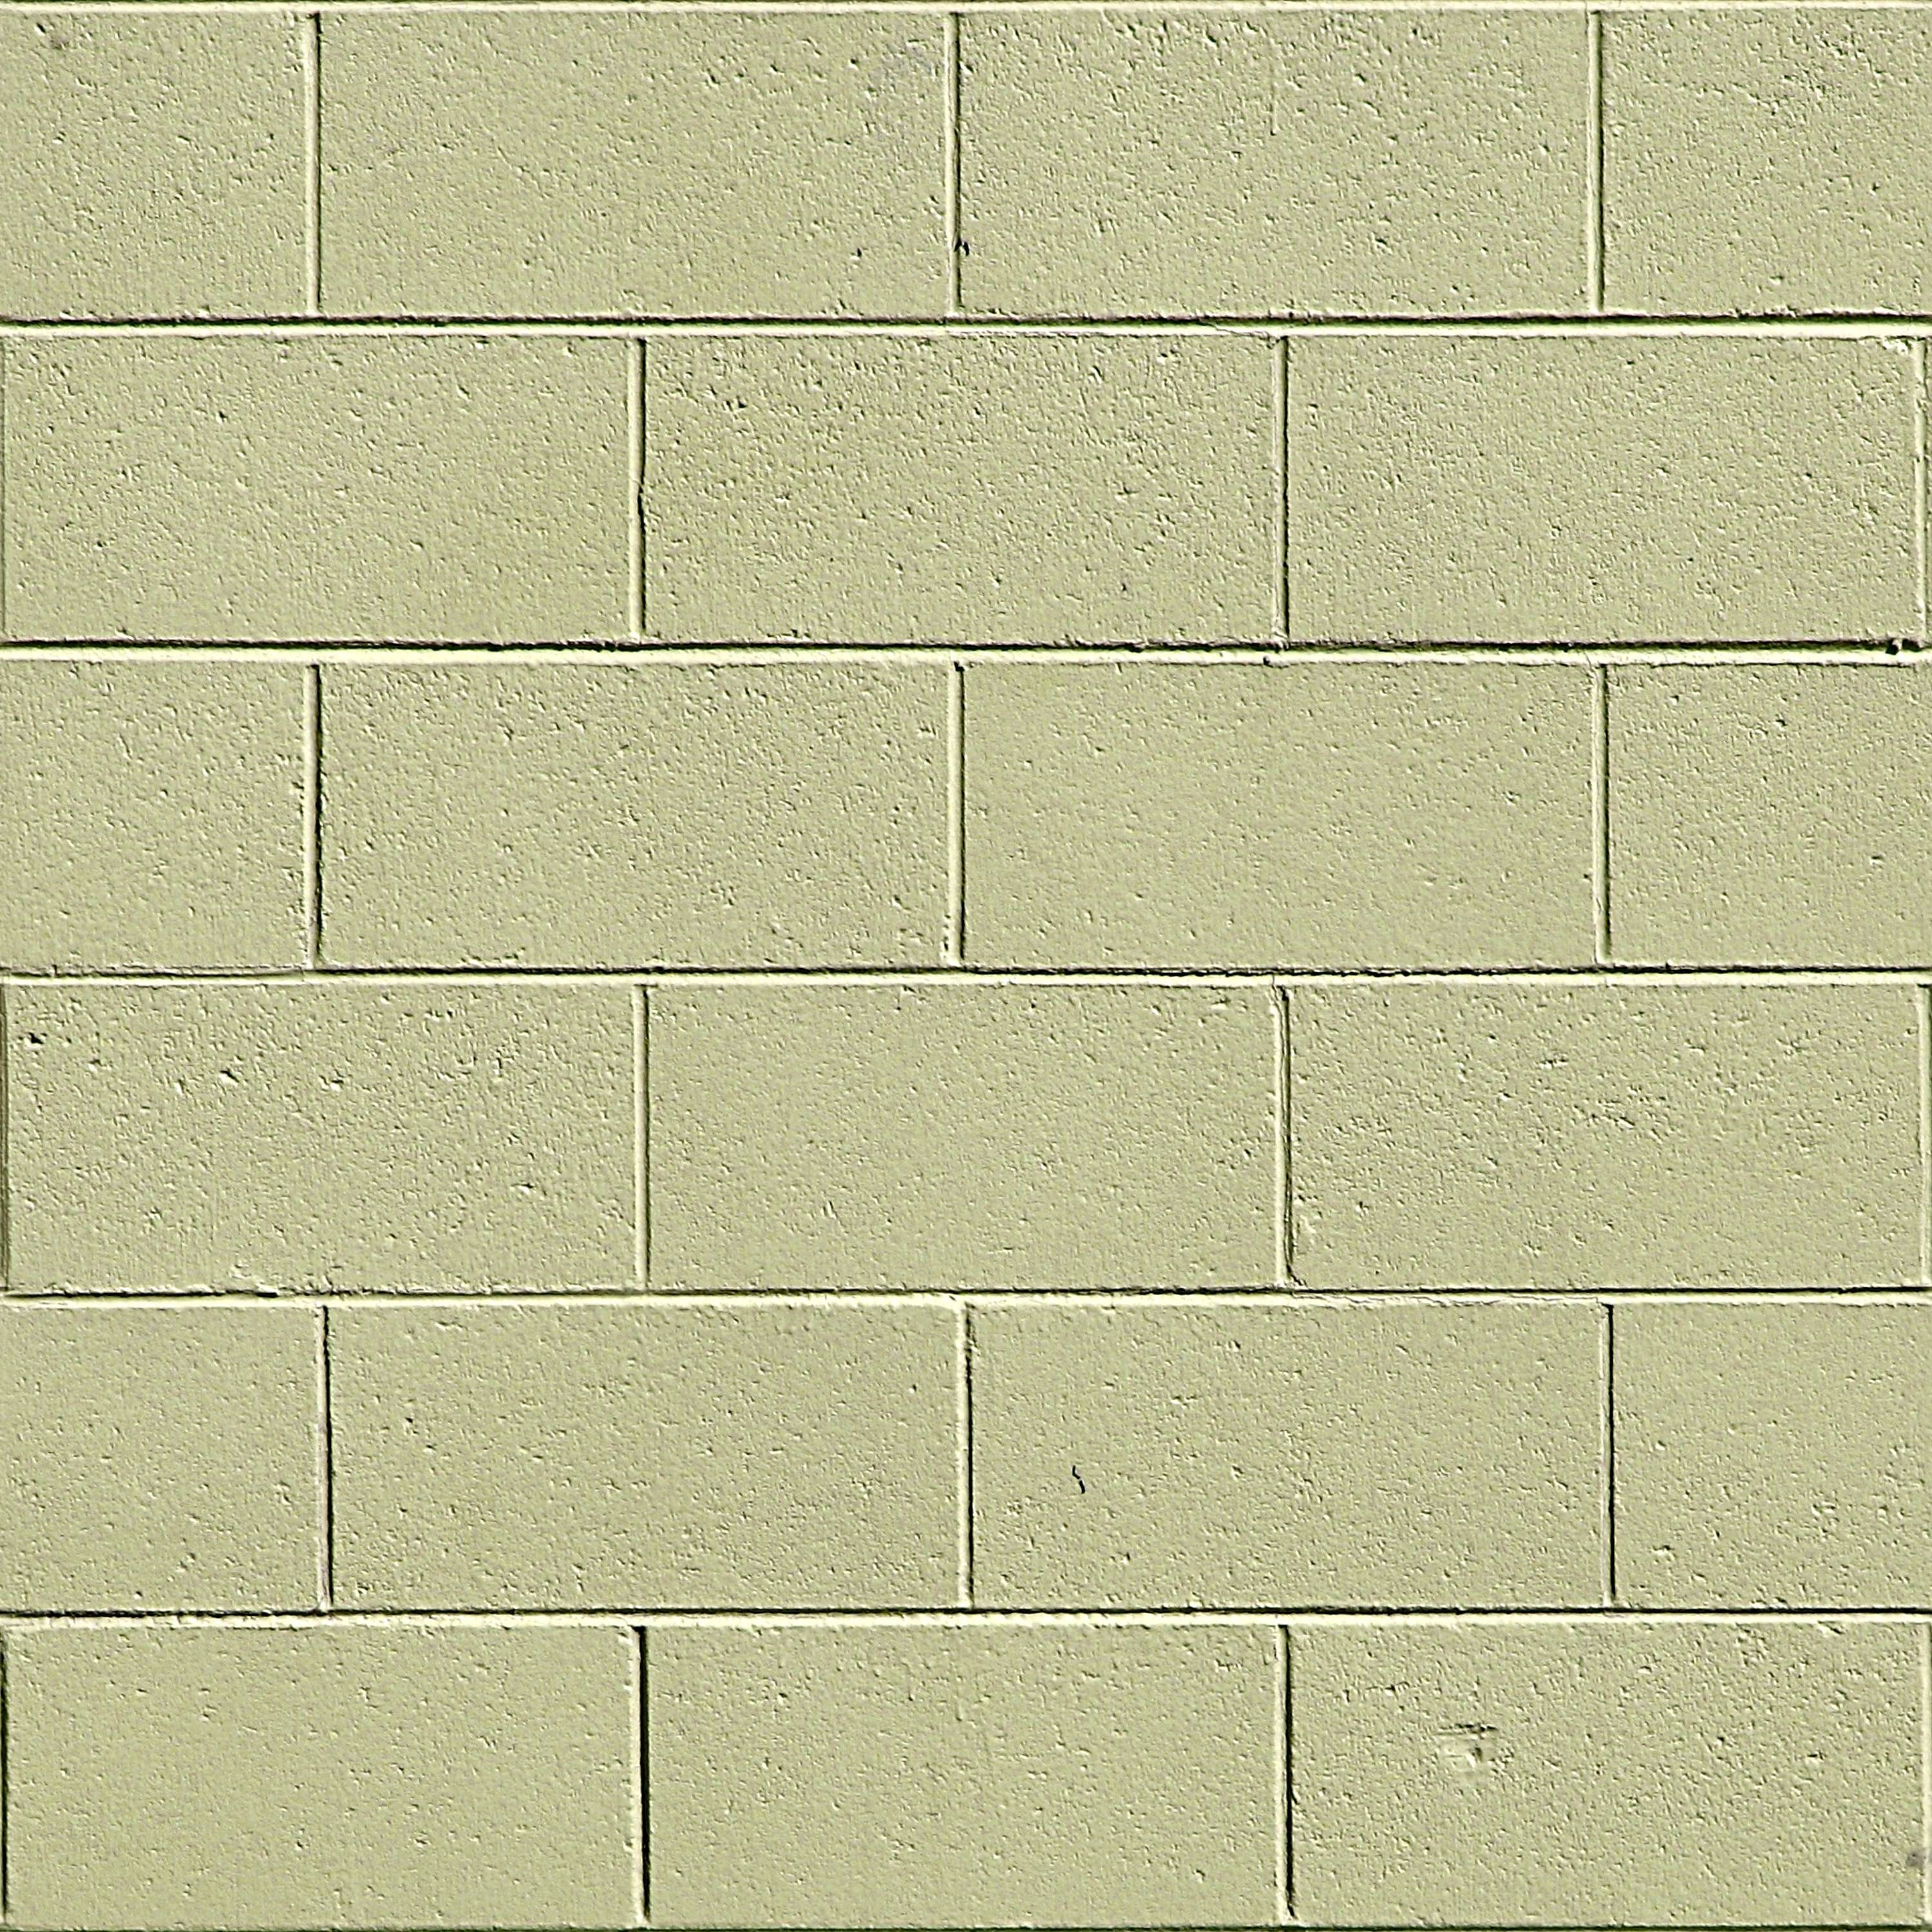 Http Www Aoaforums Com Forum Attachments Digital Image Photo Video Audio Editing 26099d1348099506 Camoflage Seamless Texture Maps Free Use Concrete Block Wall